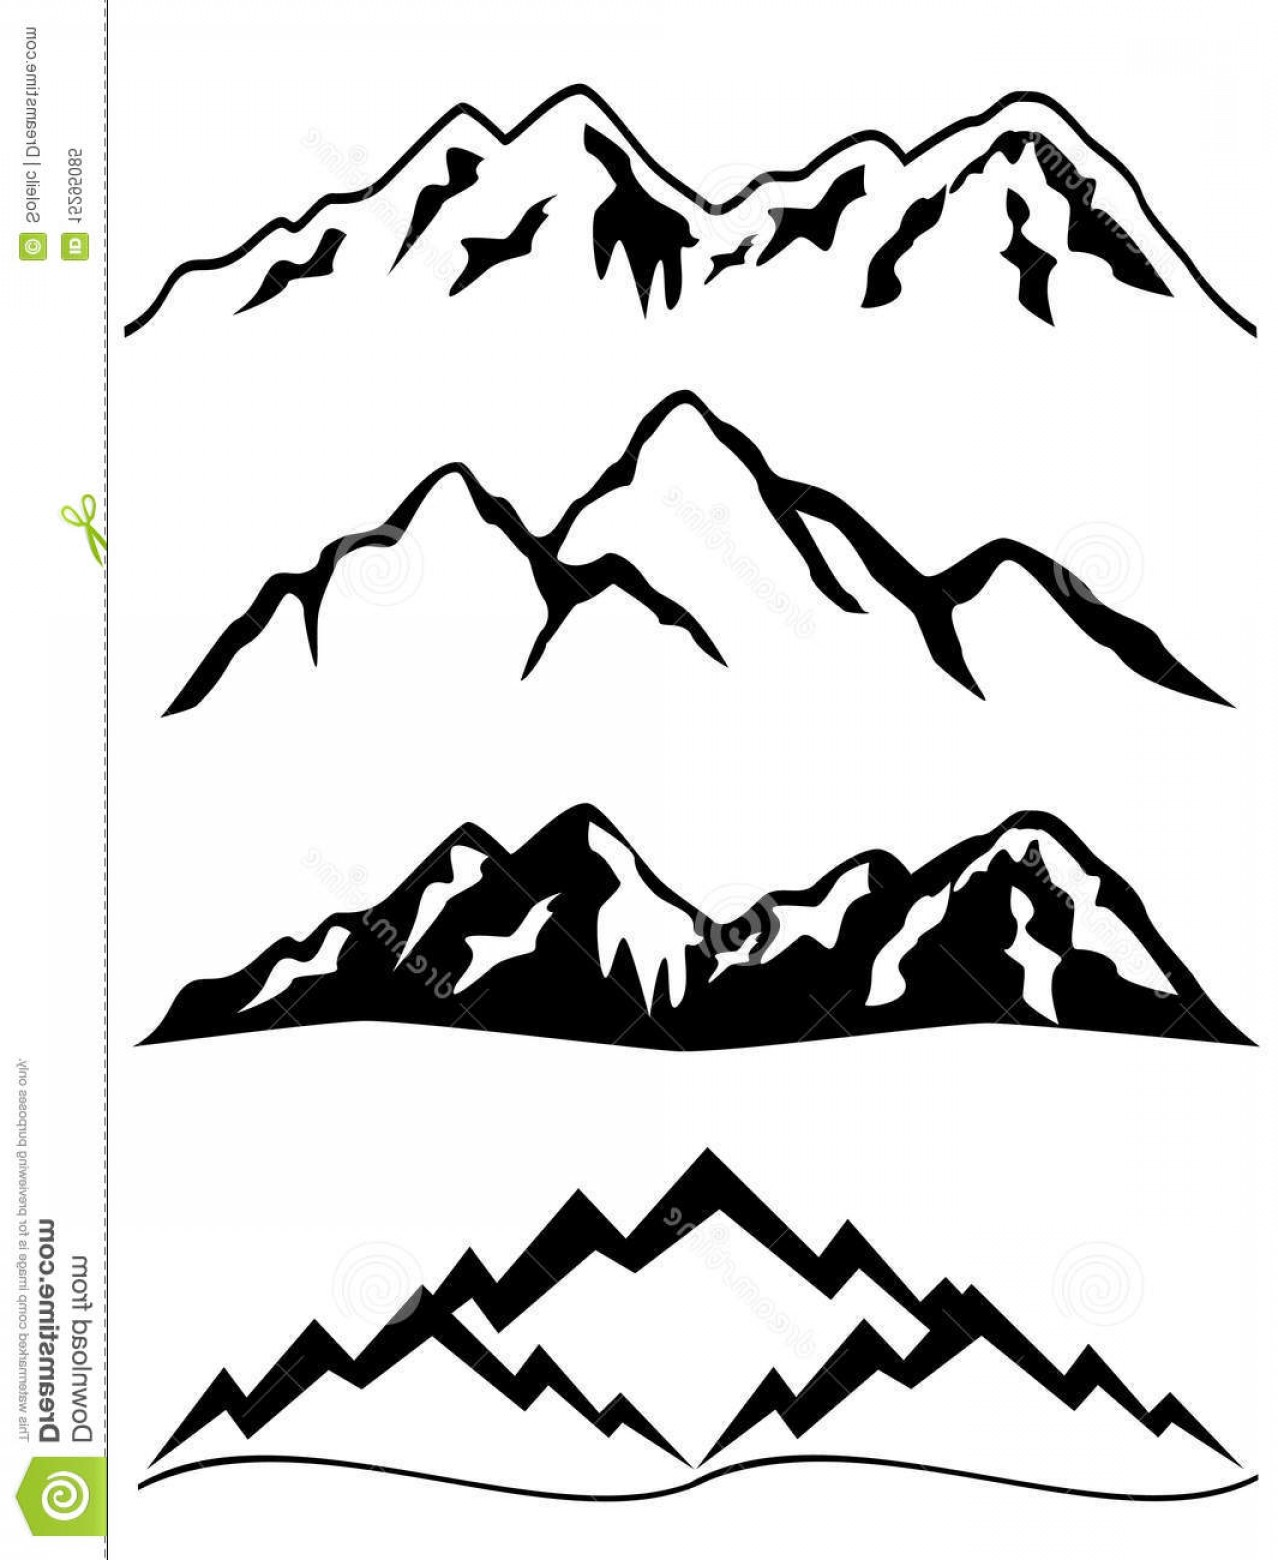 Snowy Mountain Vector Graphics: Royalty Free Stock Photo Mountains Snow Image